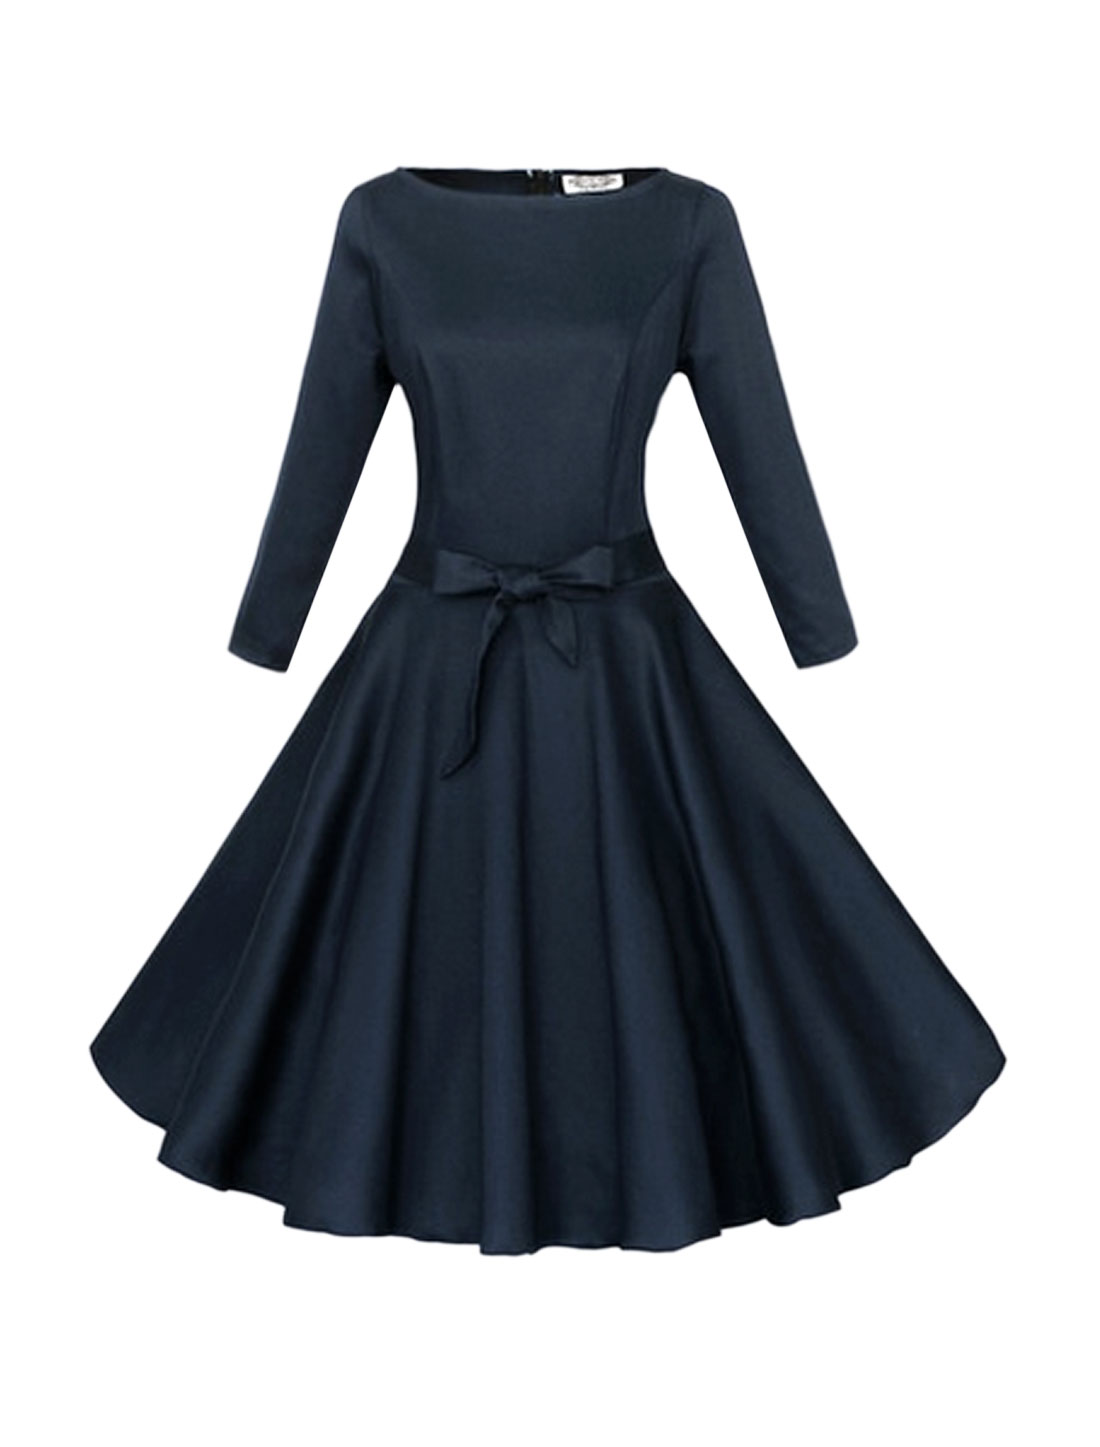 Women Boat Neck 3/4 Sleeves Self Tie Belt Swing Dress Blue L